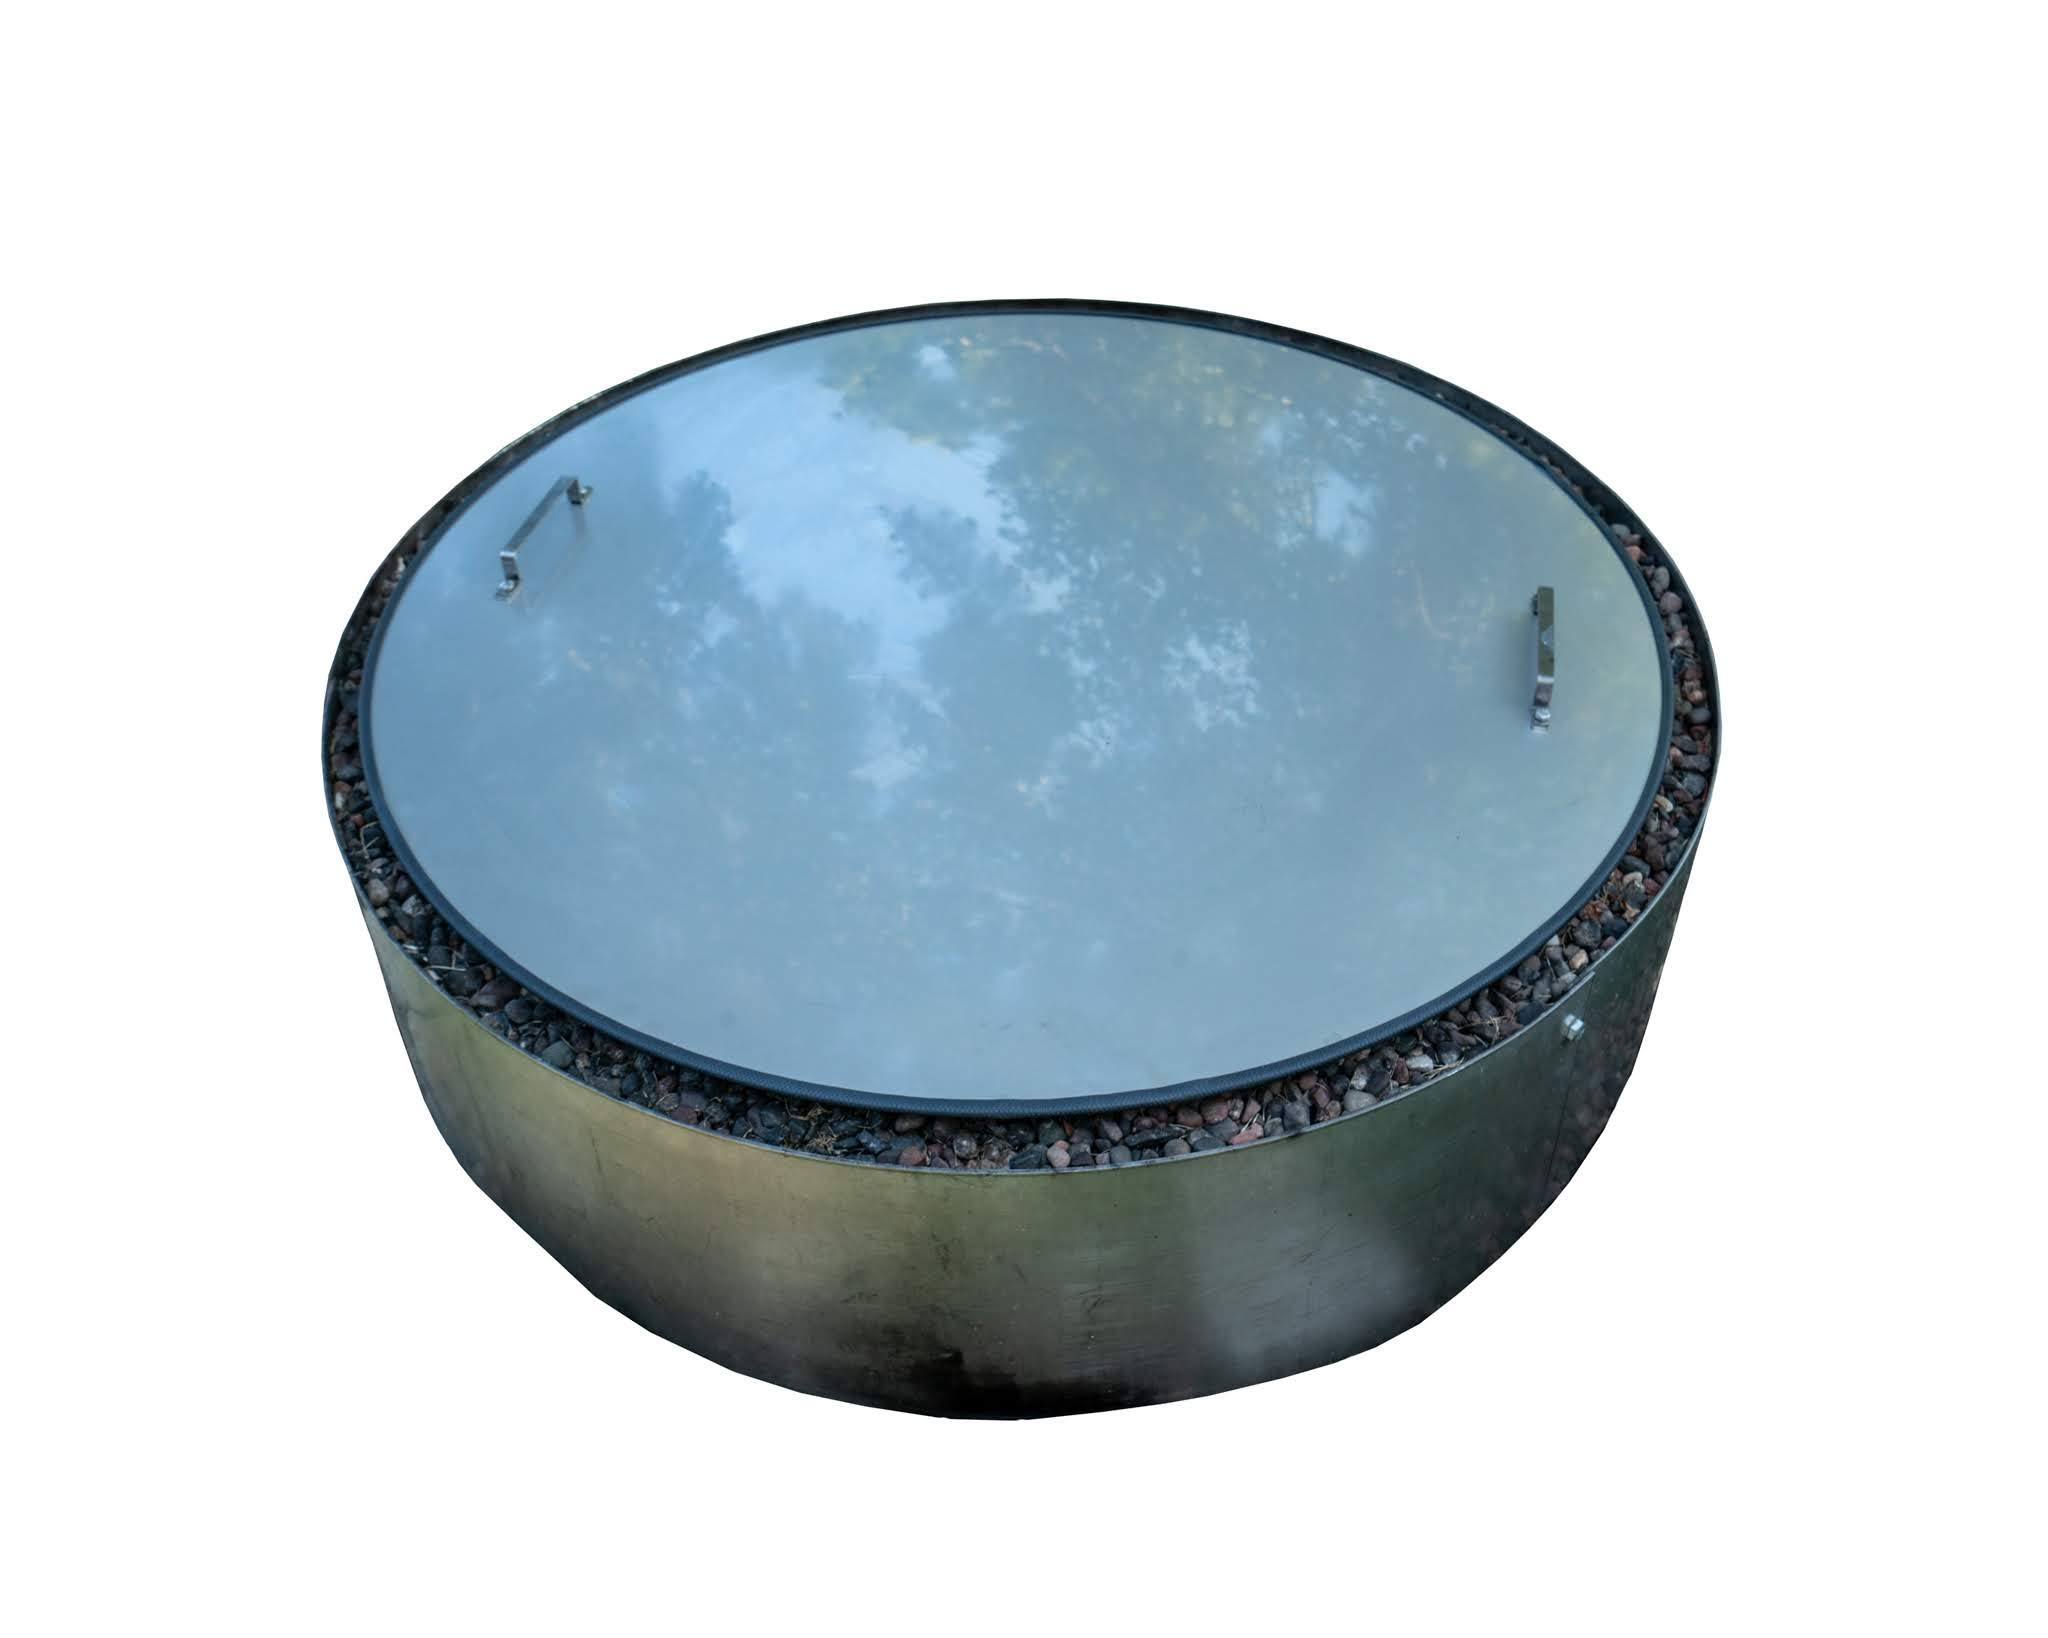 Stainless Steel Flat Fire Pit Cover Lid Top 36'' Diameter by Higley Fire Pit Cover